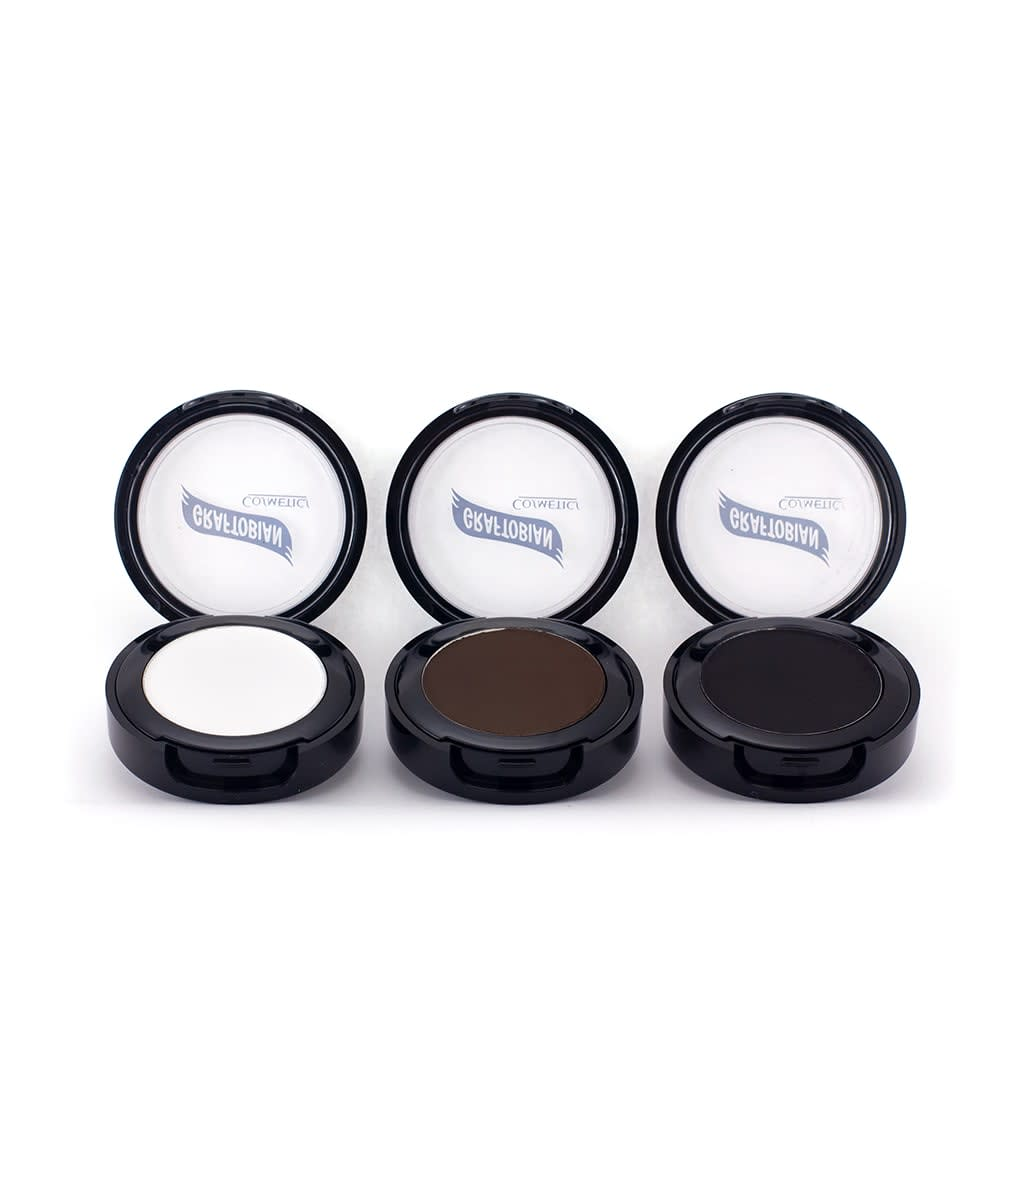 Ultra HD Cake Eye Liner Compacts